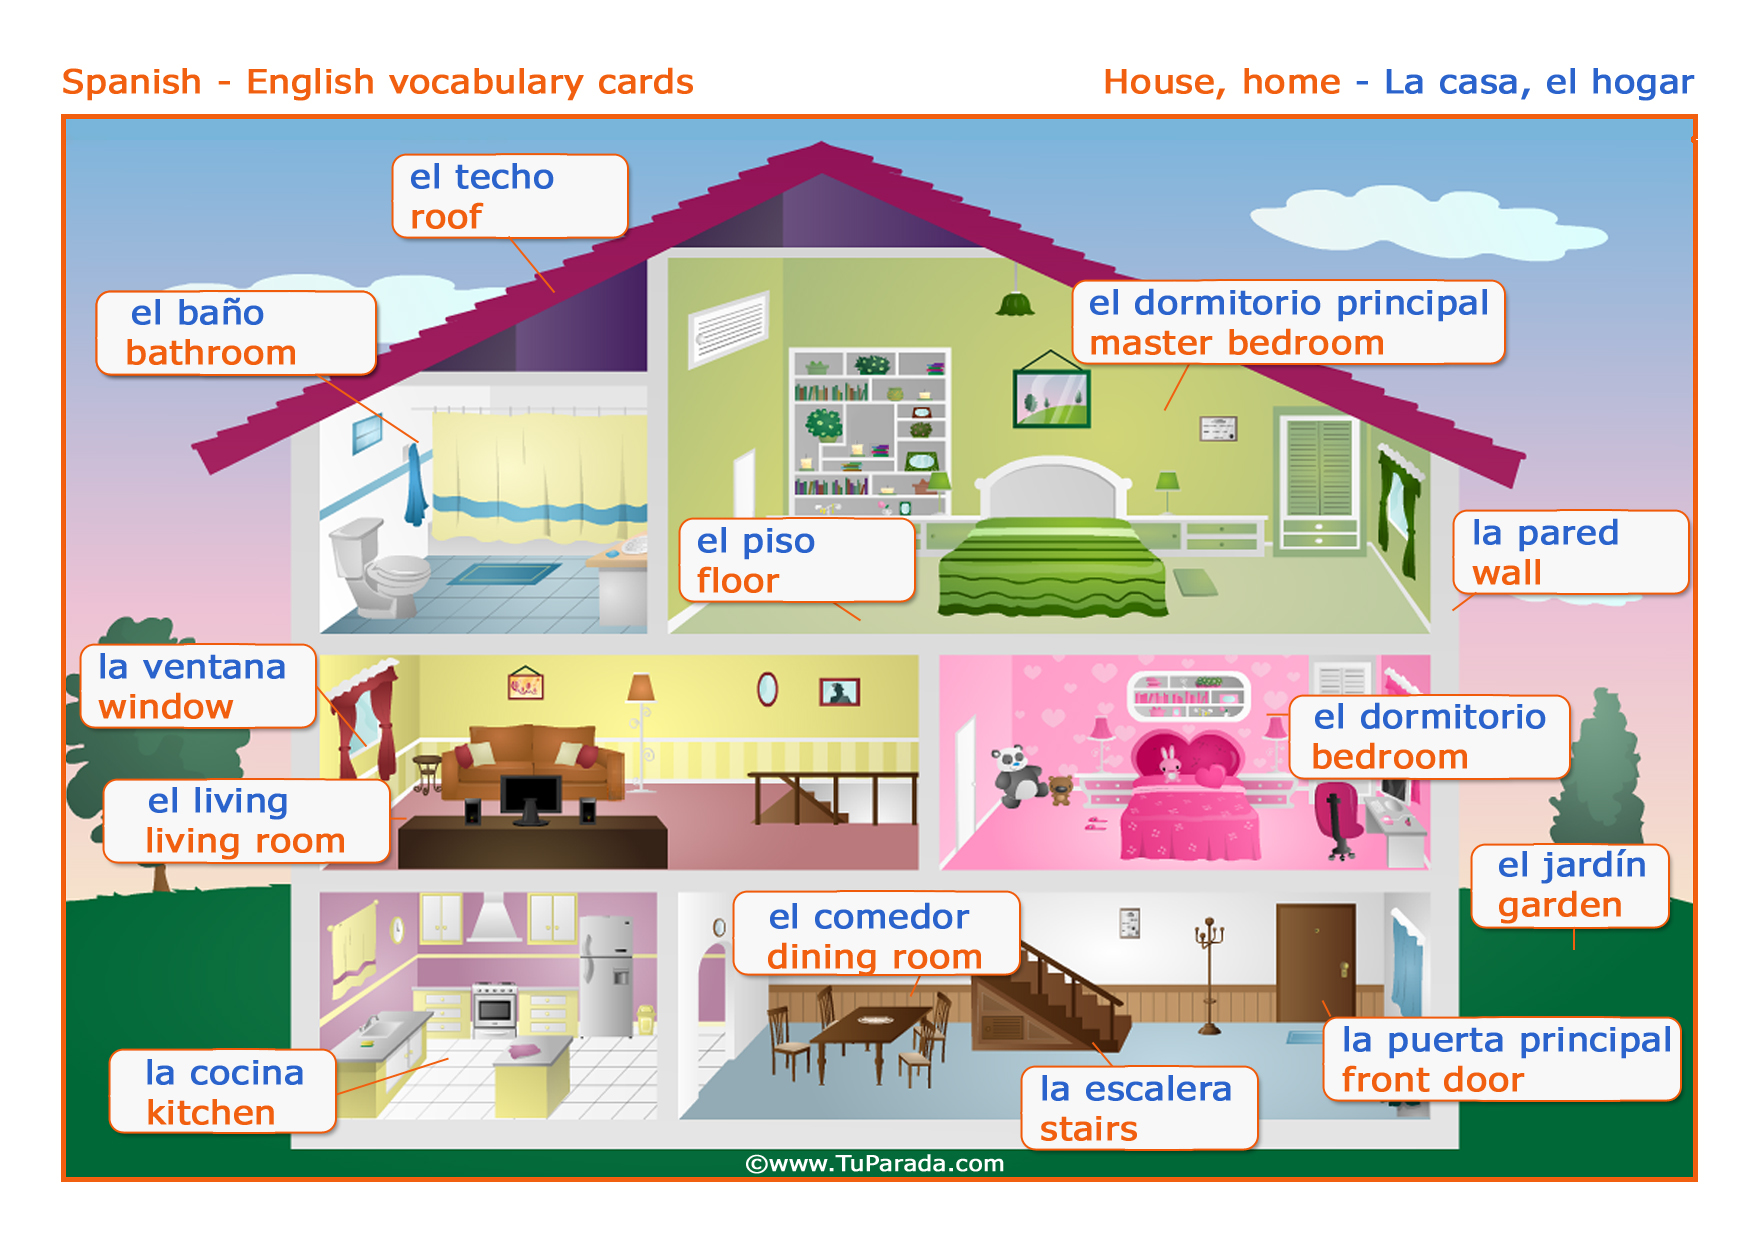 Vocabulario espa ol ingl s la casa the house - La casa muebles ...